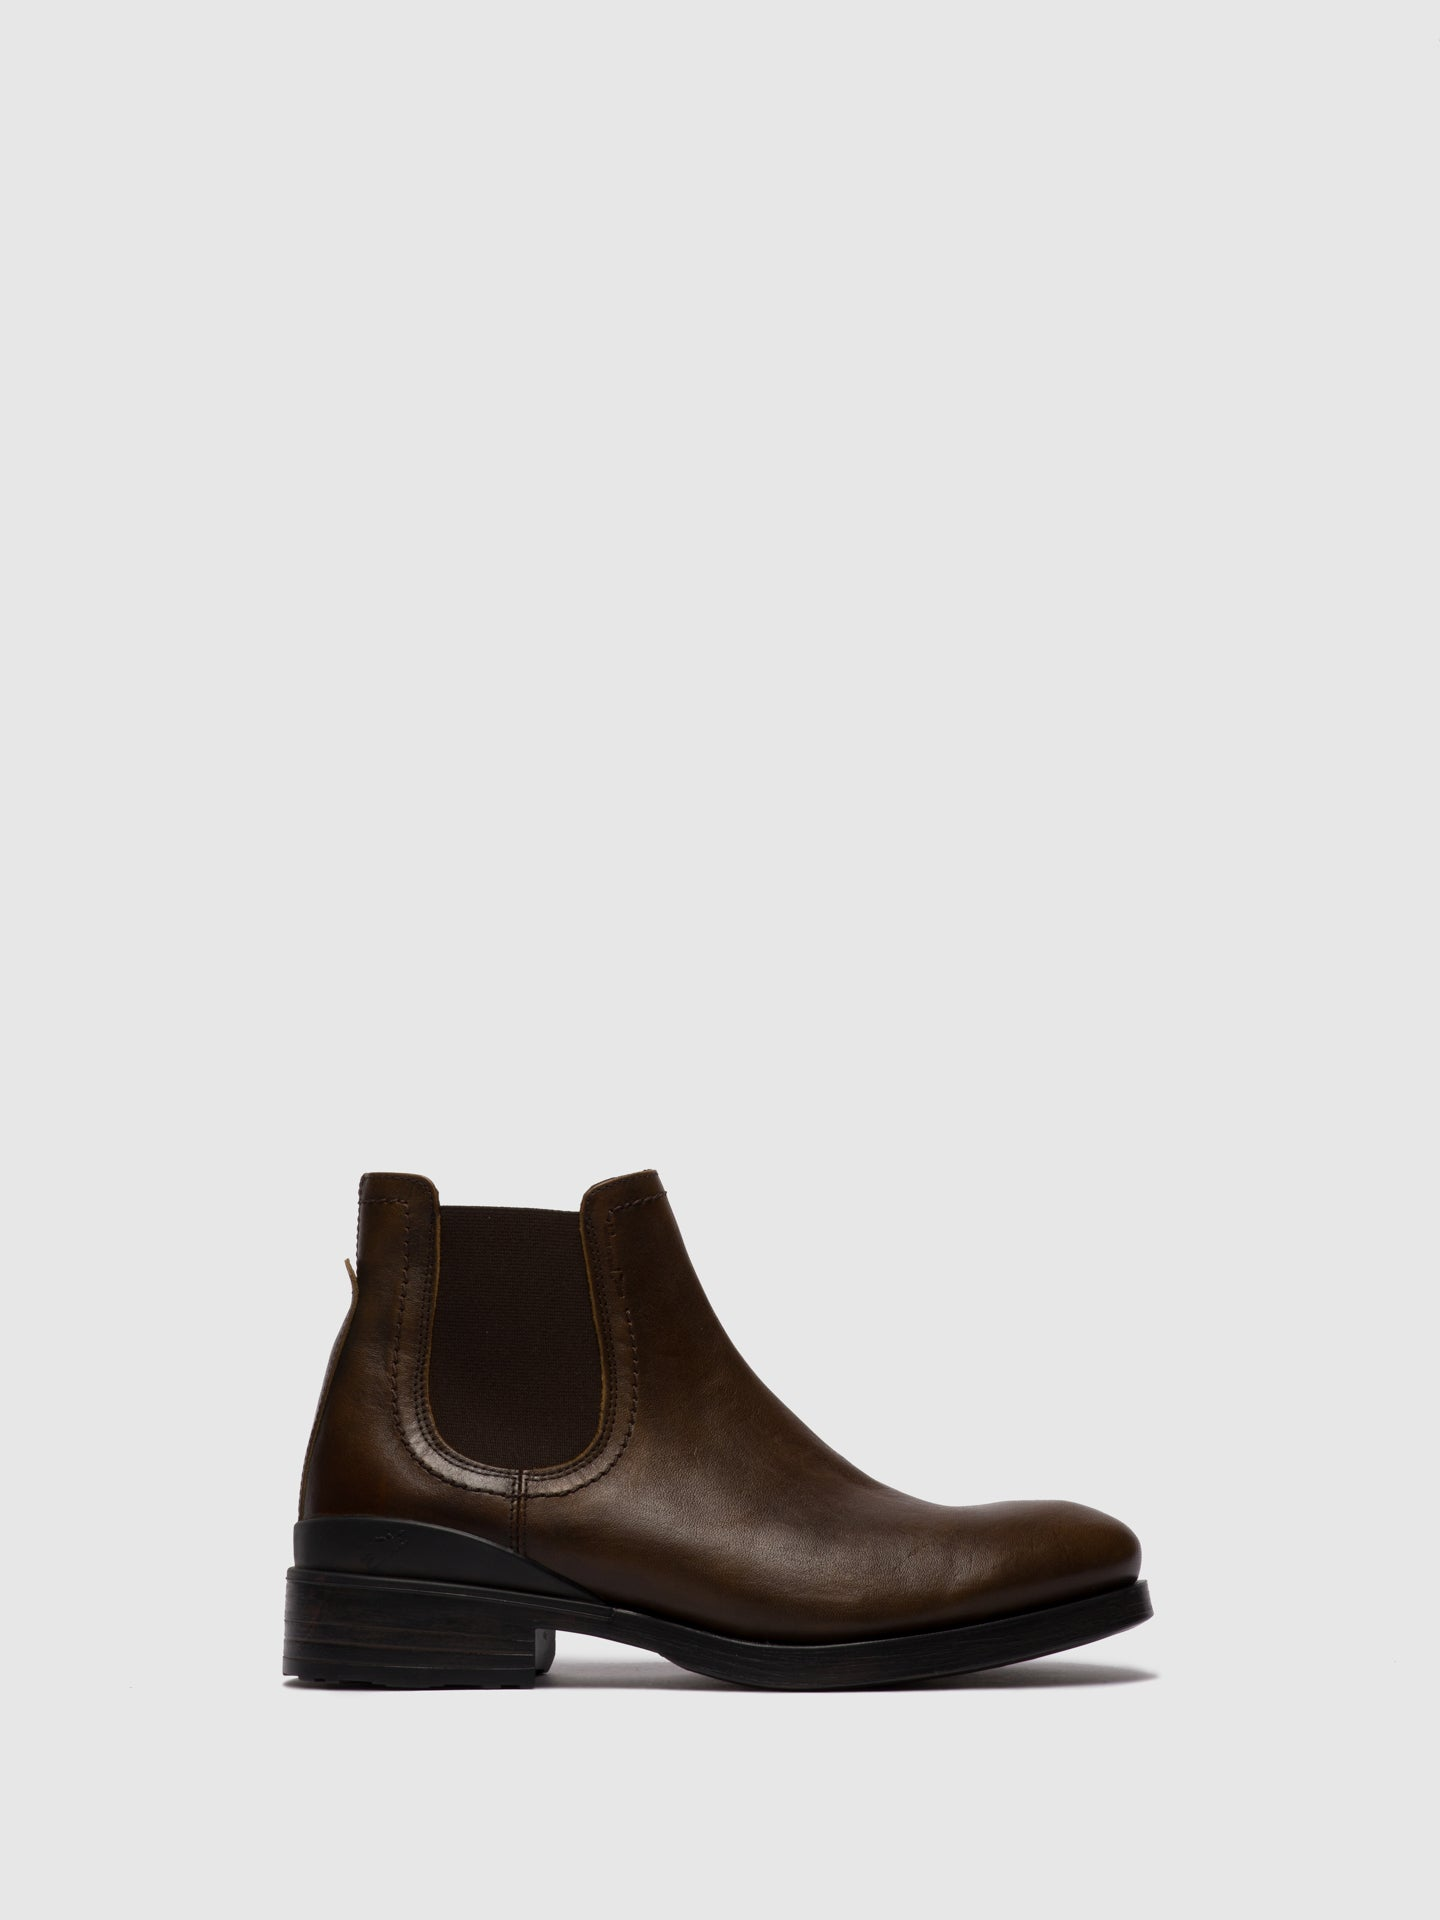 Fly London Chelsea Ankle Boots MEKO344FLY ESTIGMA(VEGETAL) BROWN